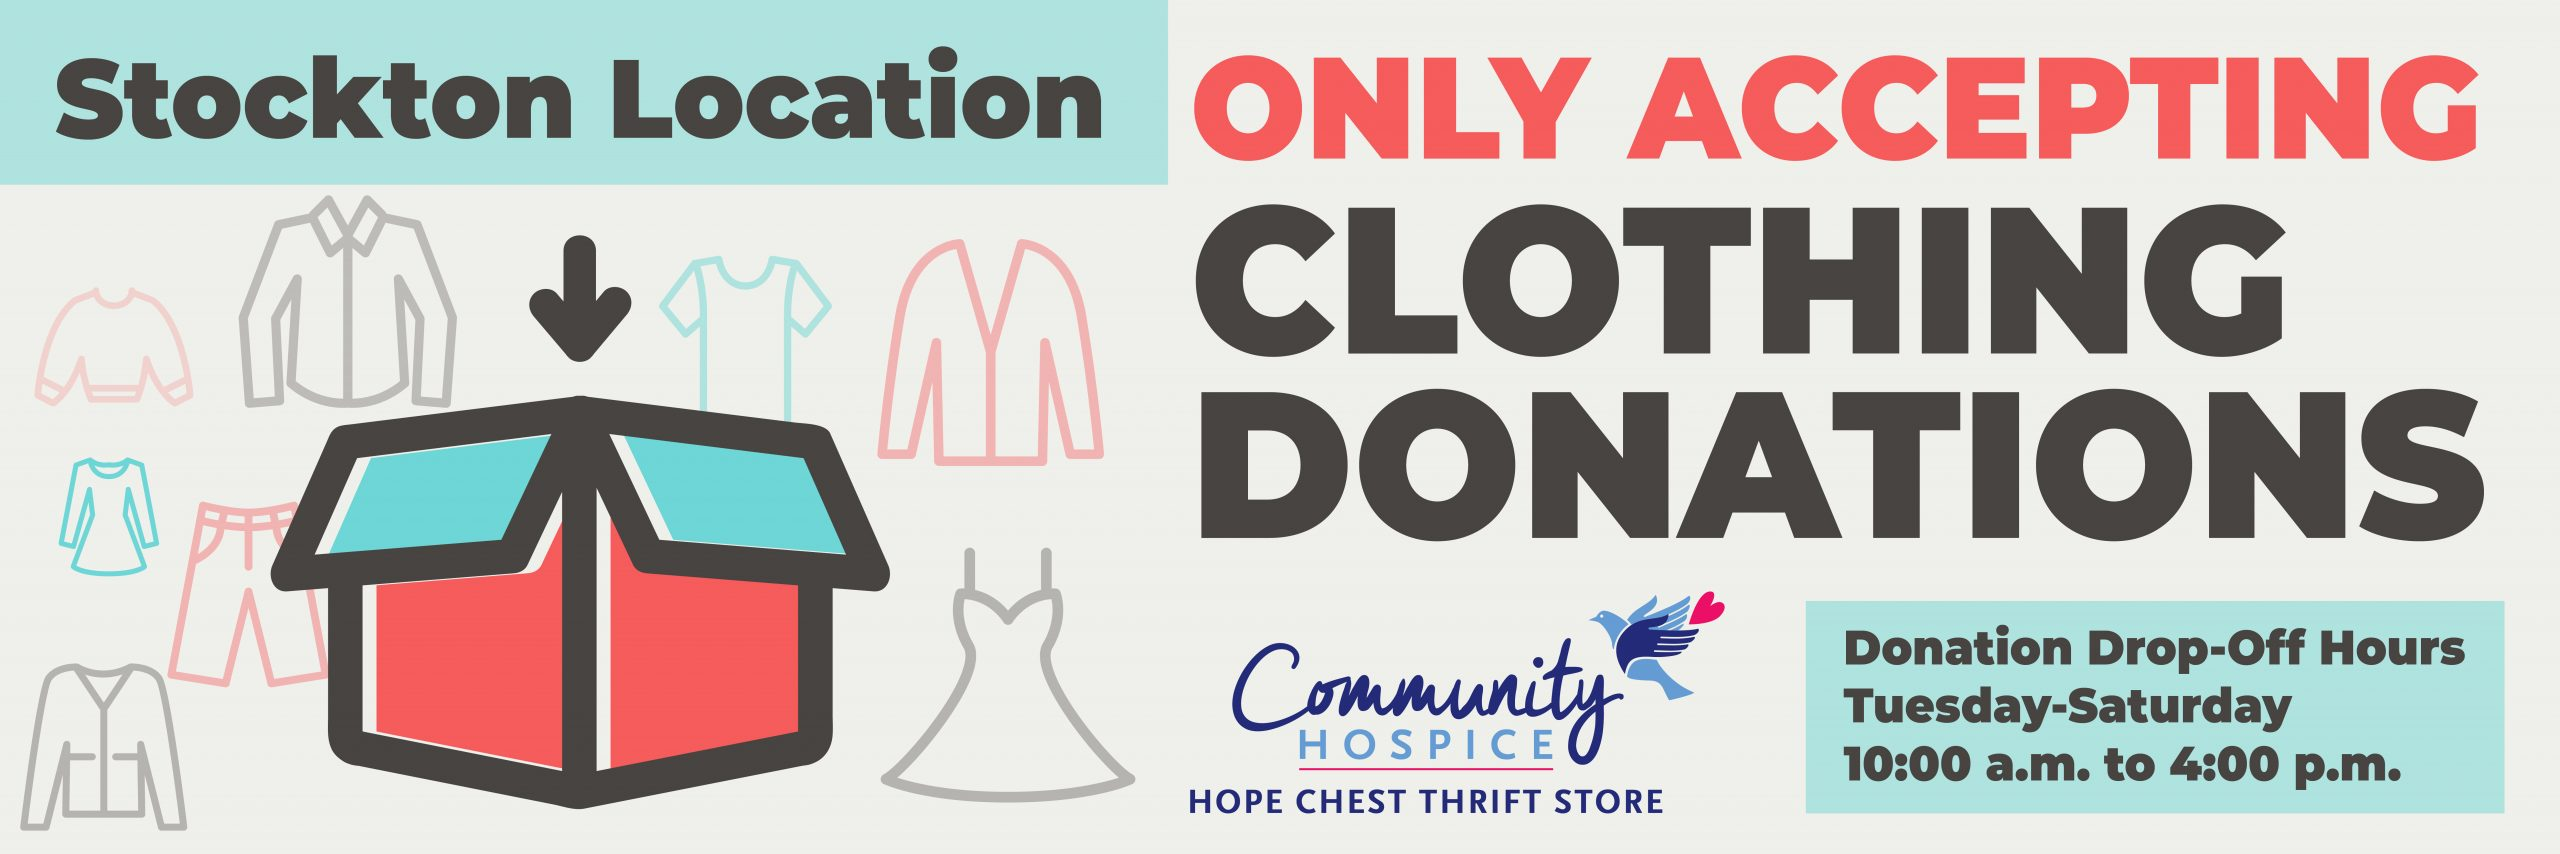 Clothing Donations Only Stockton_Carousel